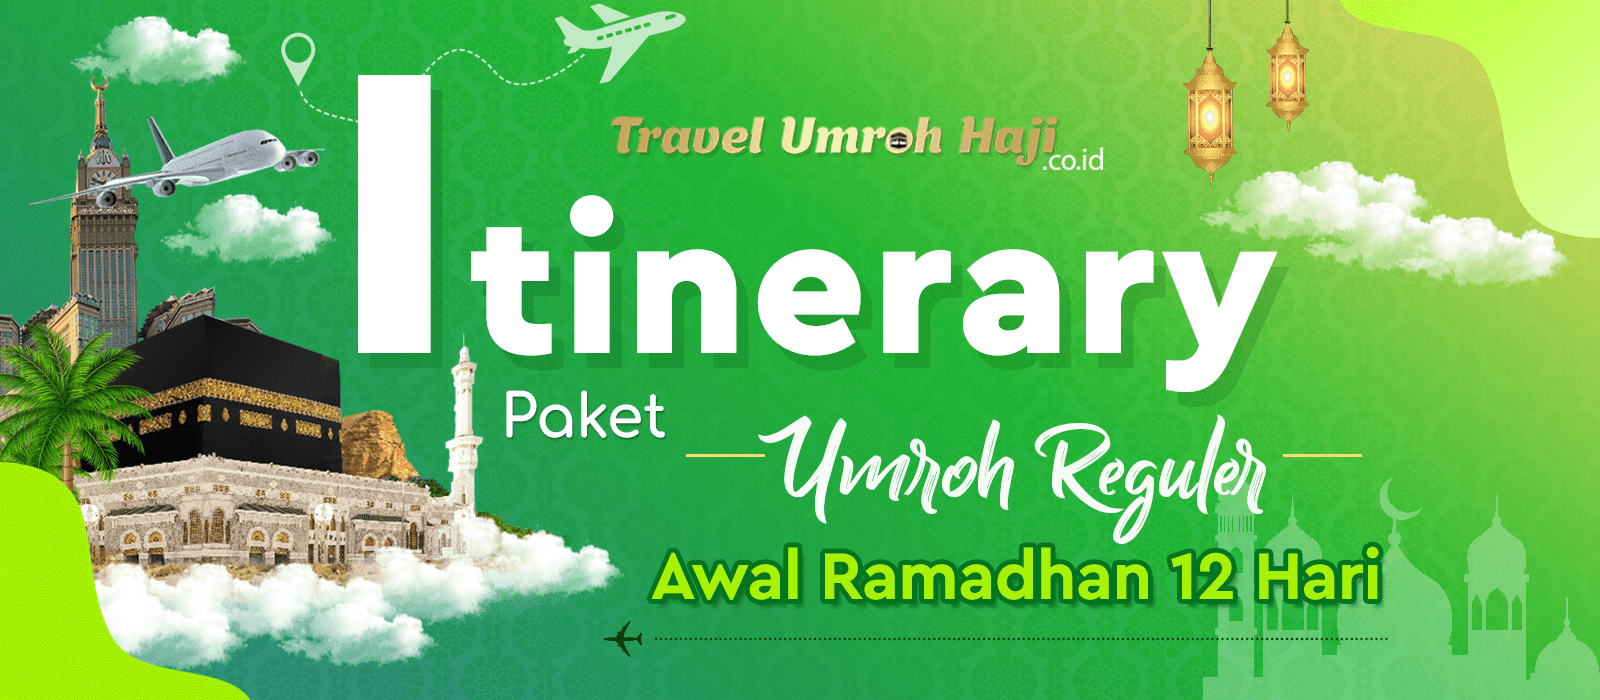 Program Itinerary Umroh 12 Hari Awal Ramadhan Direct Jeddah